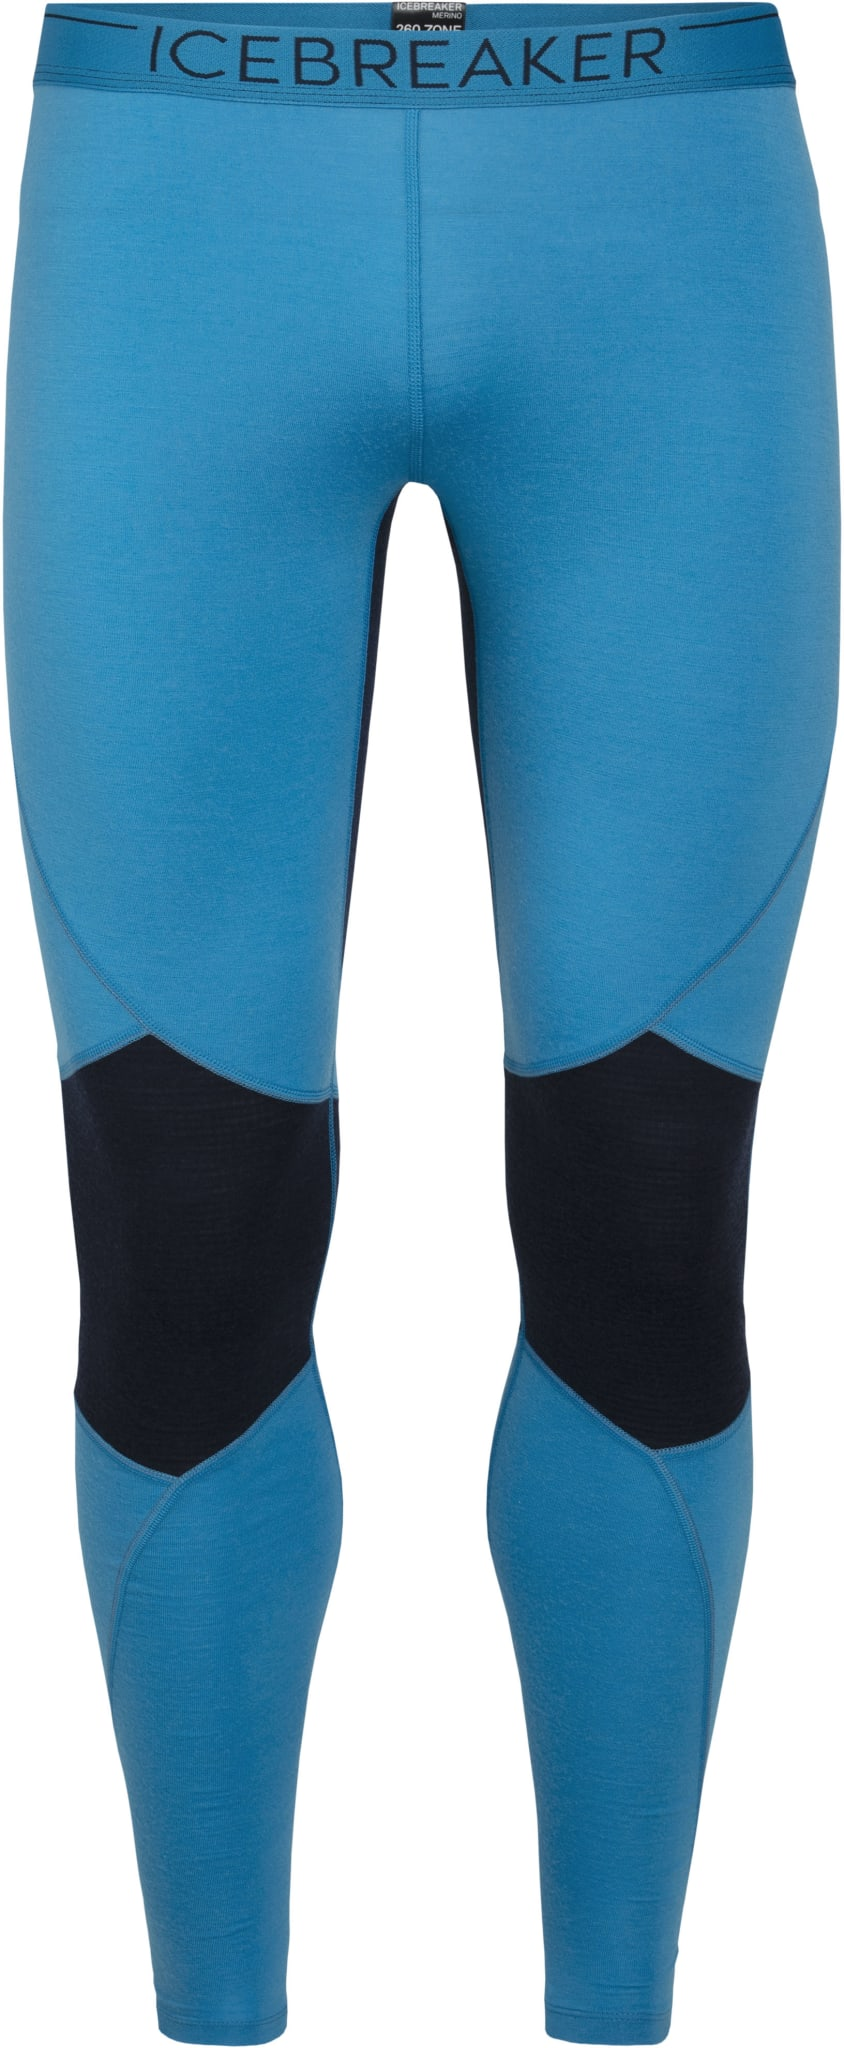 260 Zone Leggings M